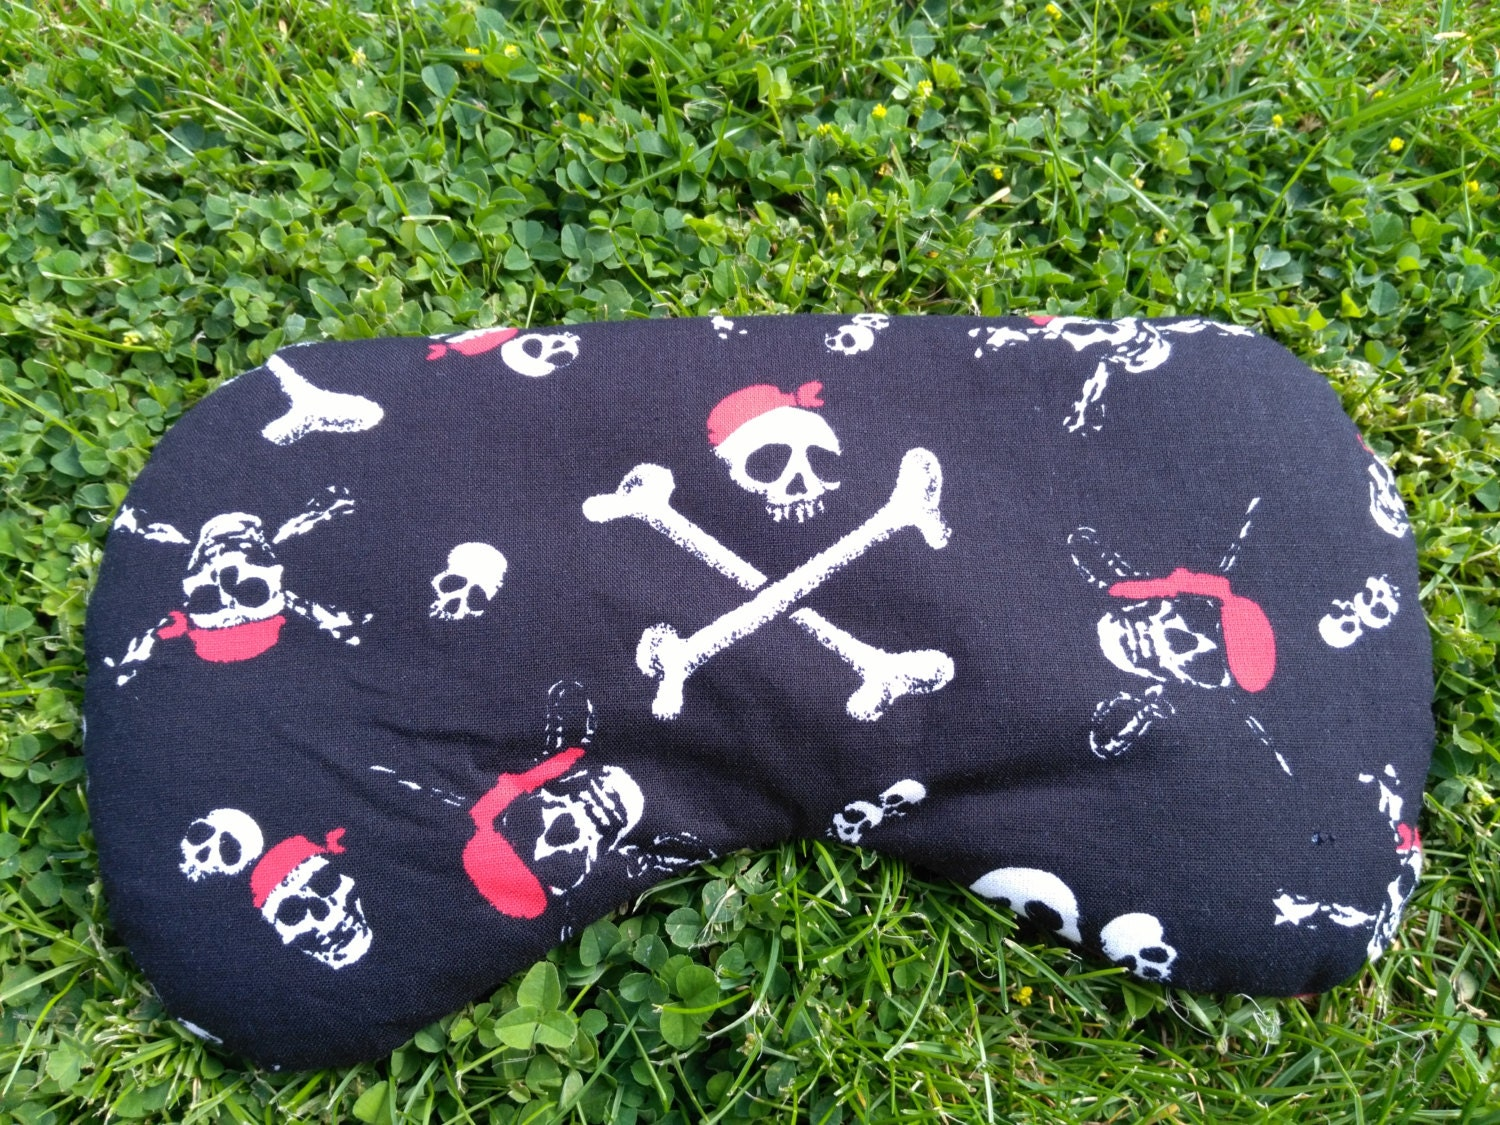 Aromatherapy lavender eye pillow mask with rice in a pirate